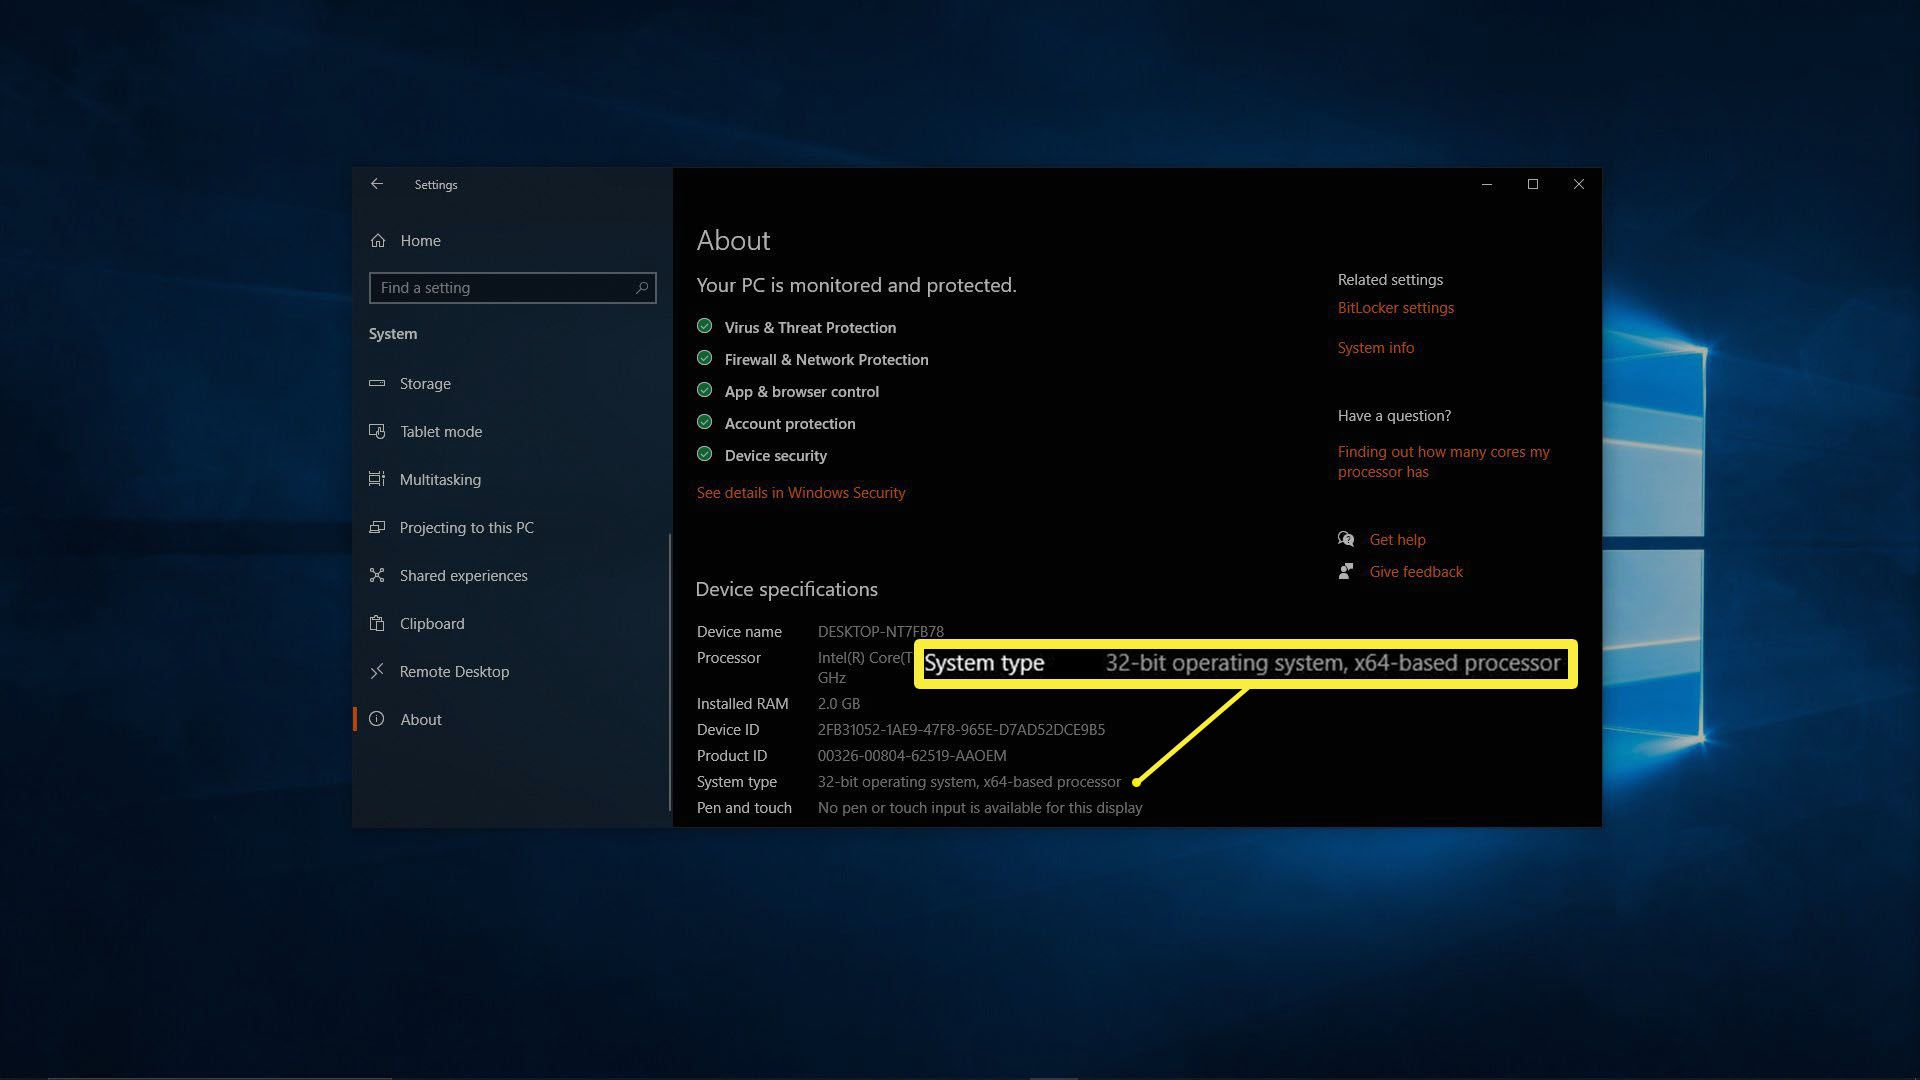 A screenshot of the About screen on Windows 10.